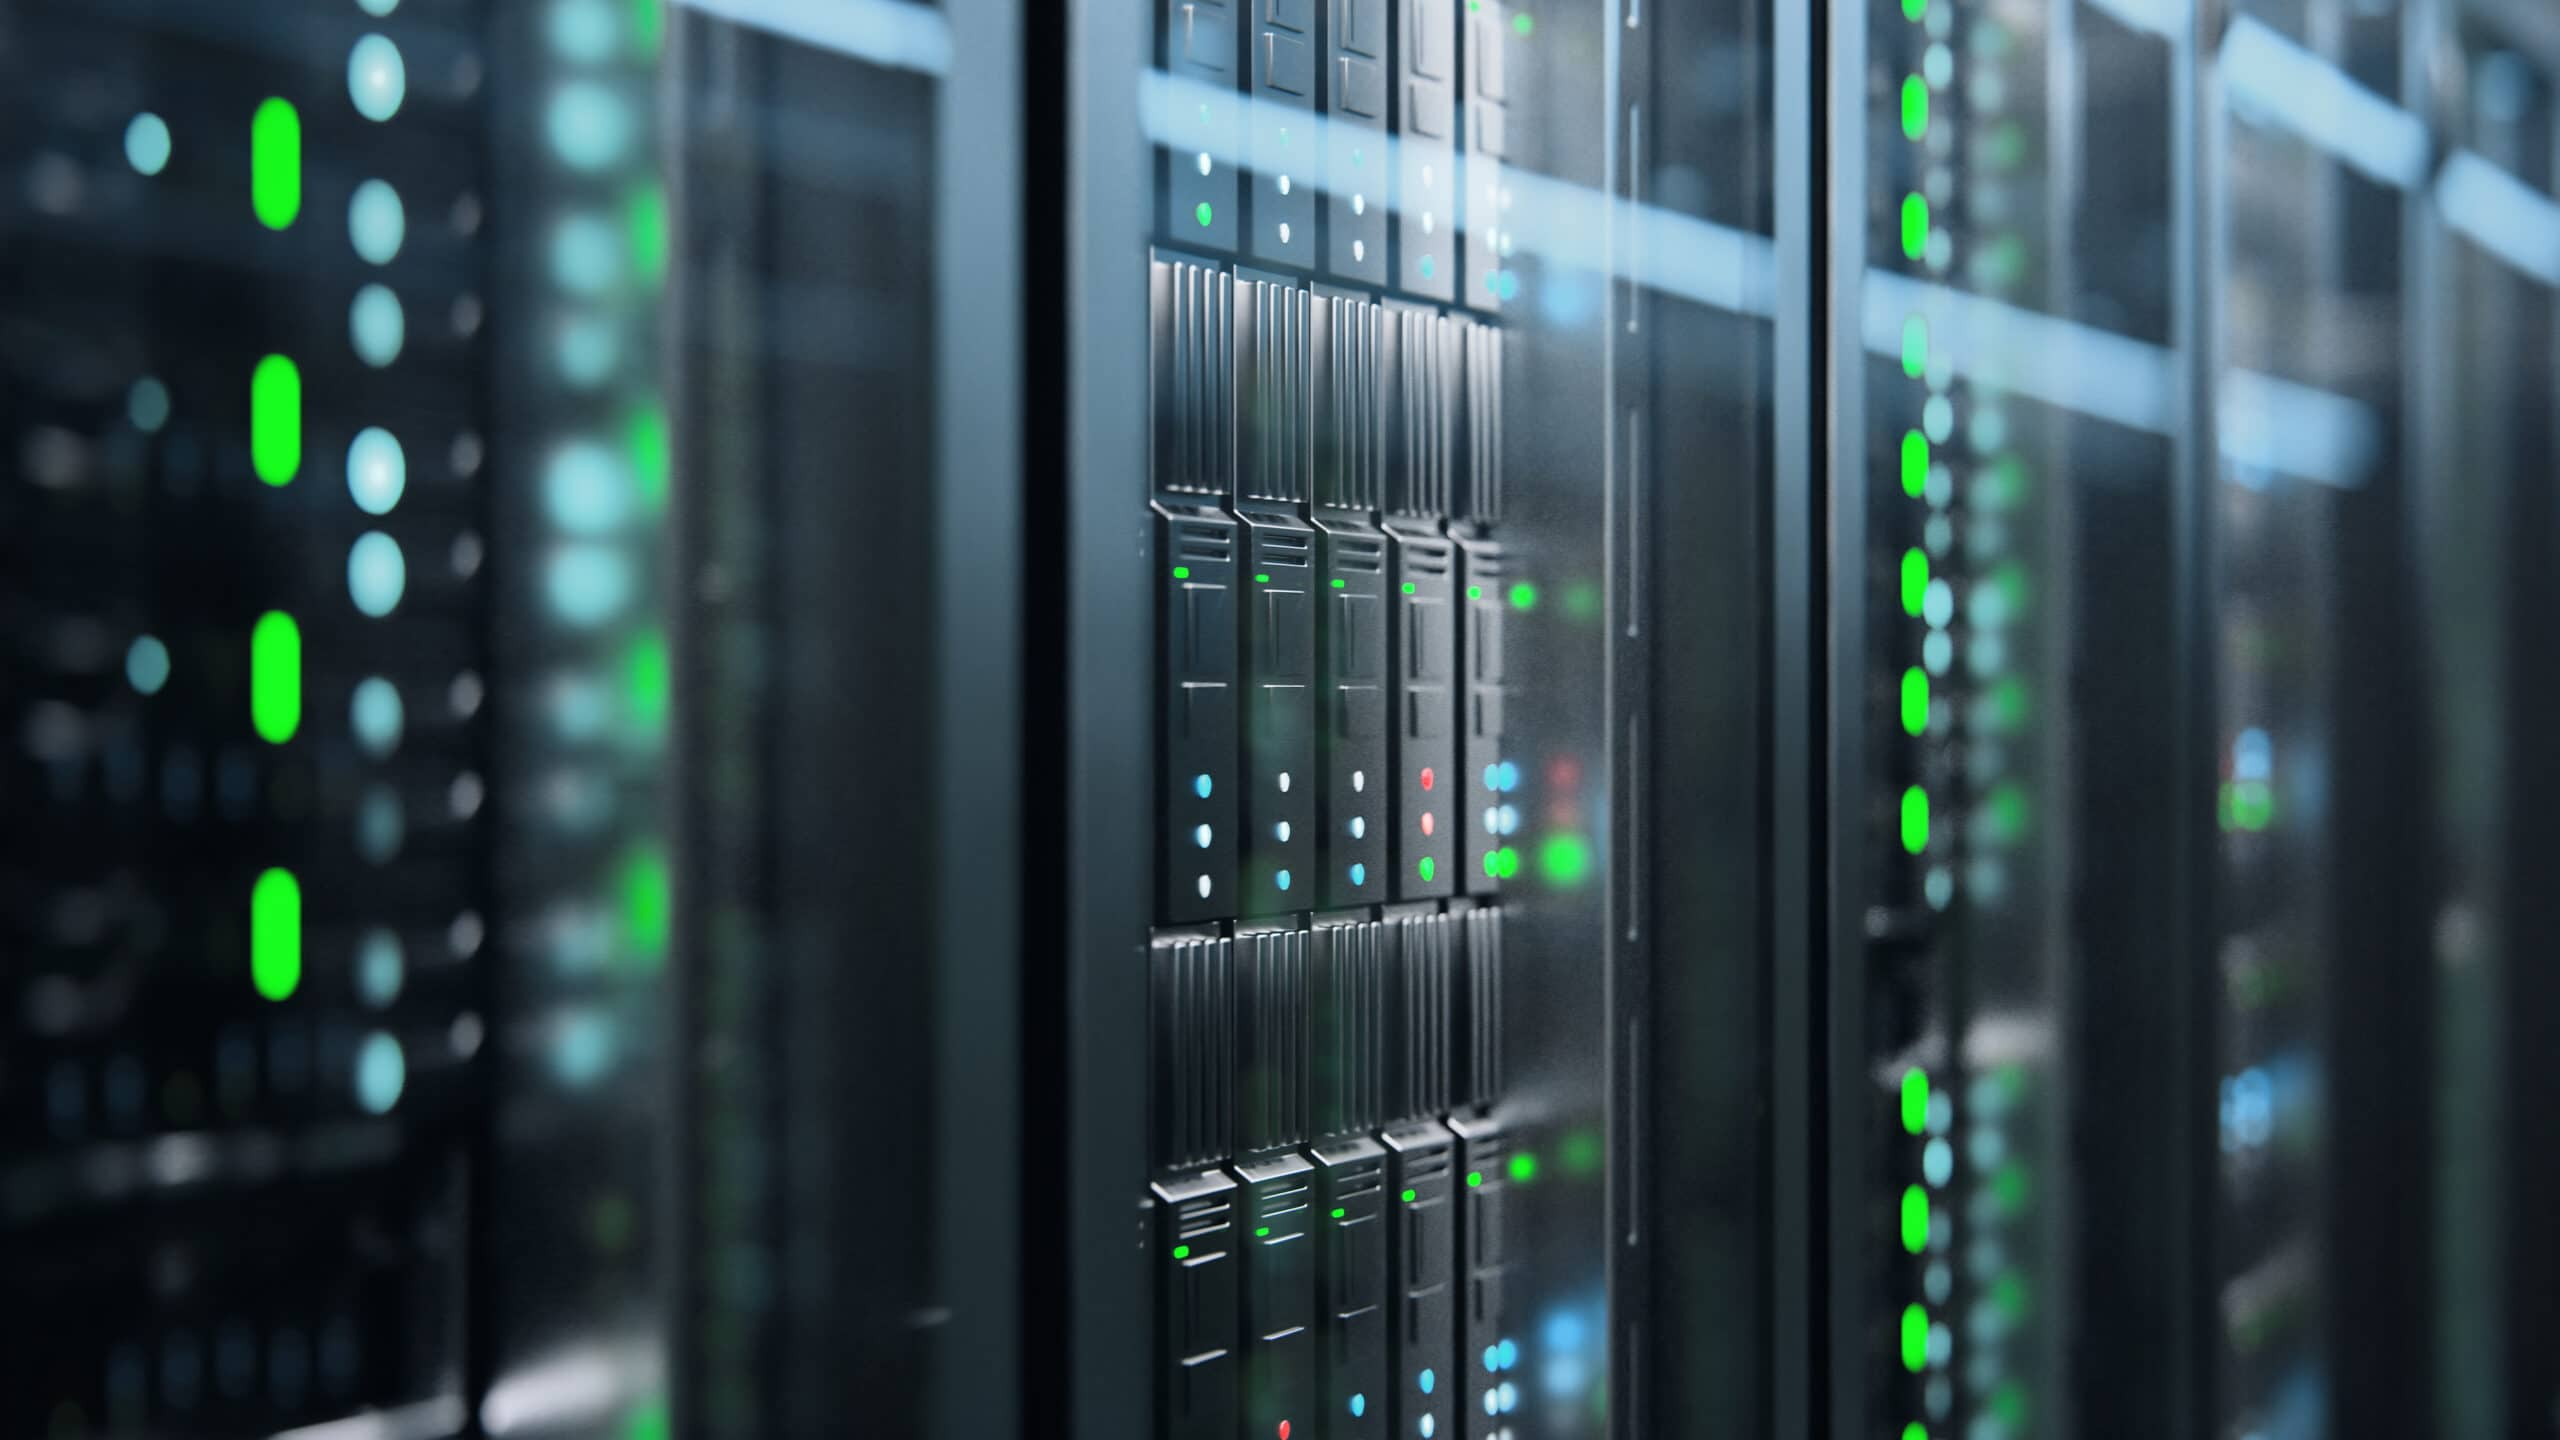 Camera slowly moving in data center showing server equipment with flickering light indicators, close up view. Seamlessly looped photorealistic 3D render animation.